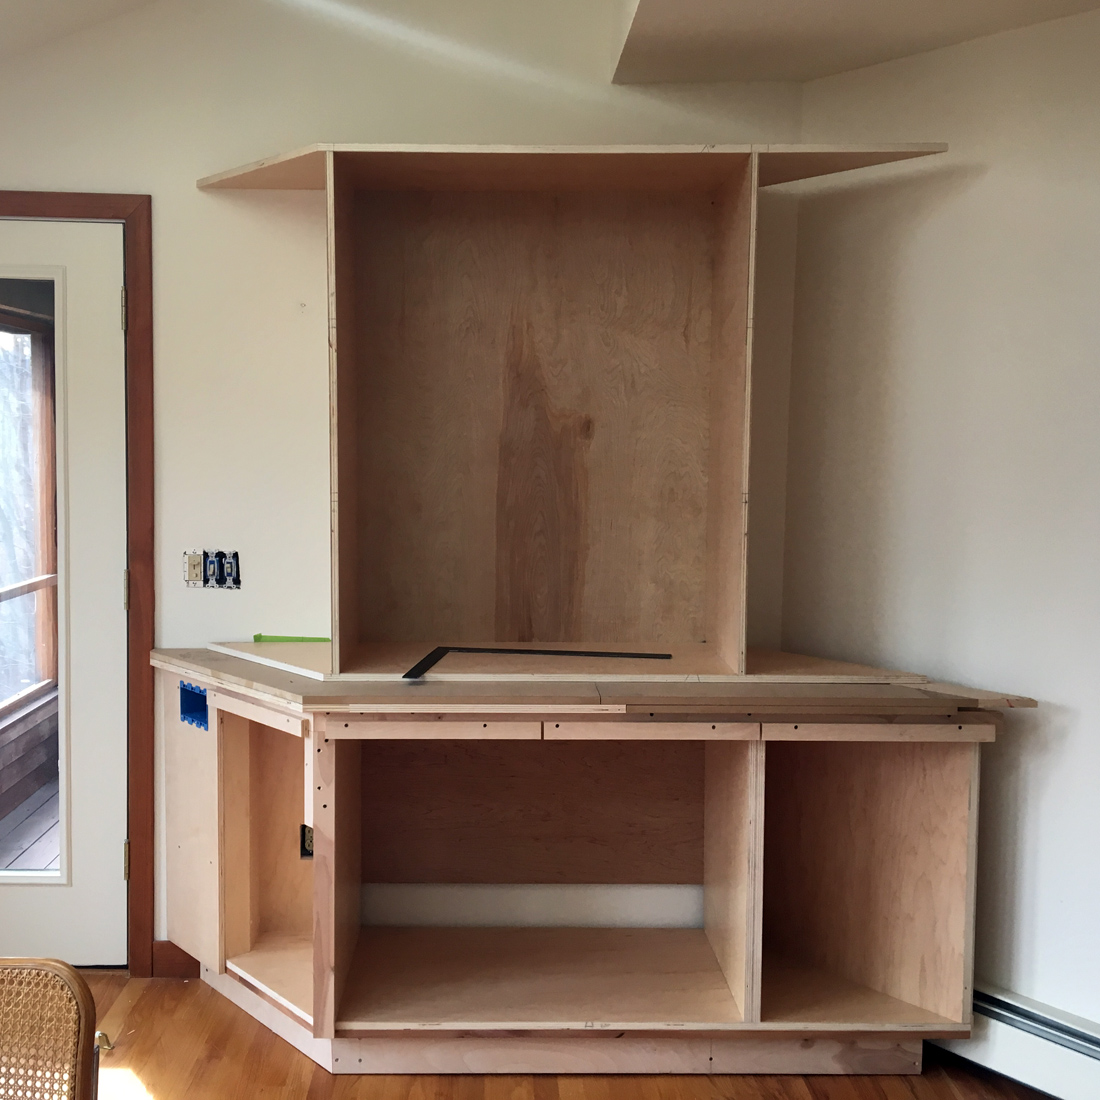 Dorset custom furniture a woodworkers photo journal for Angled kitchen cabinets